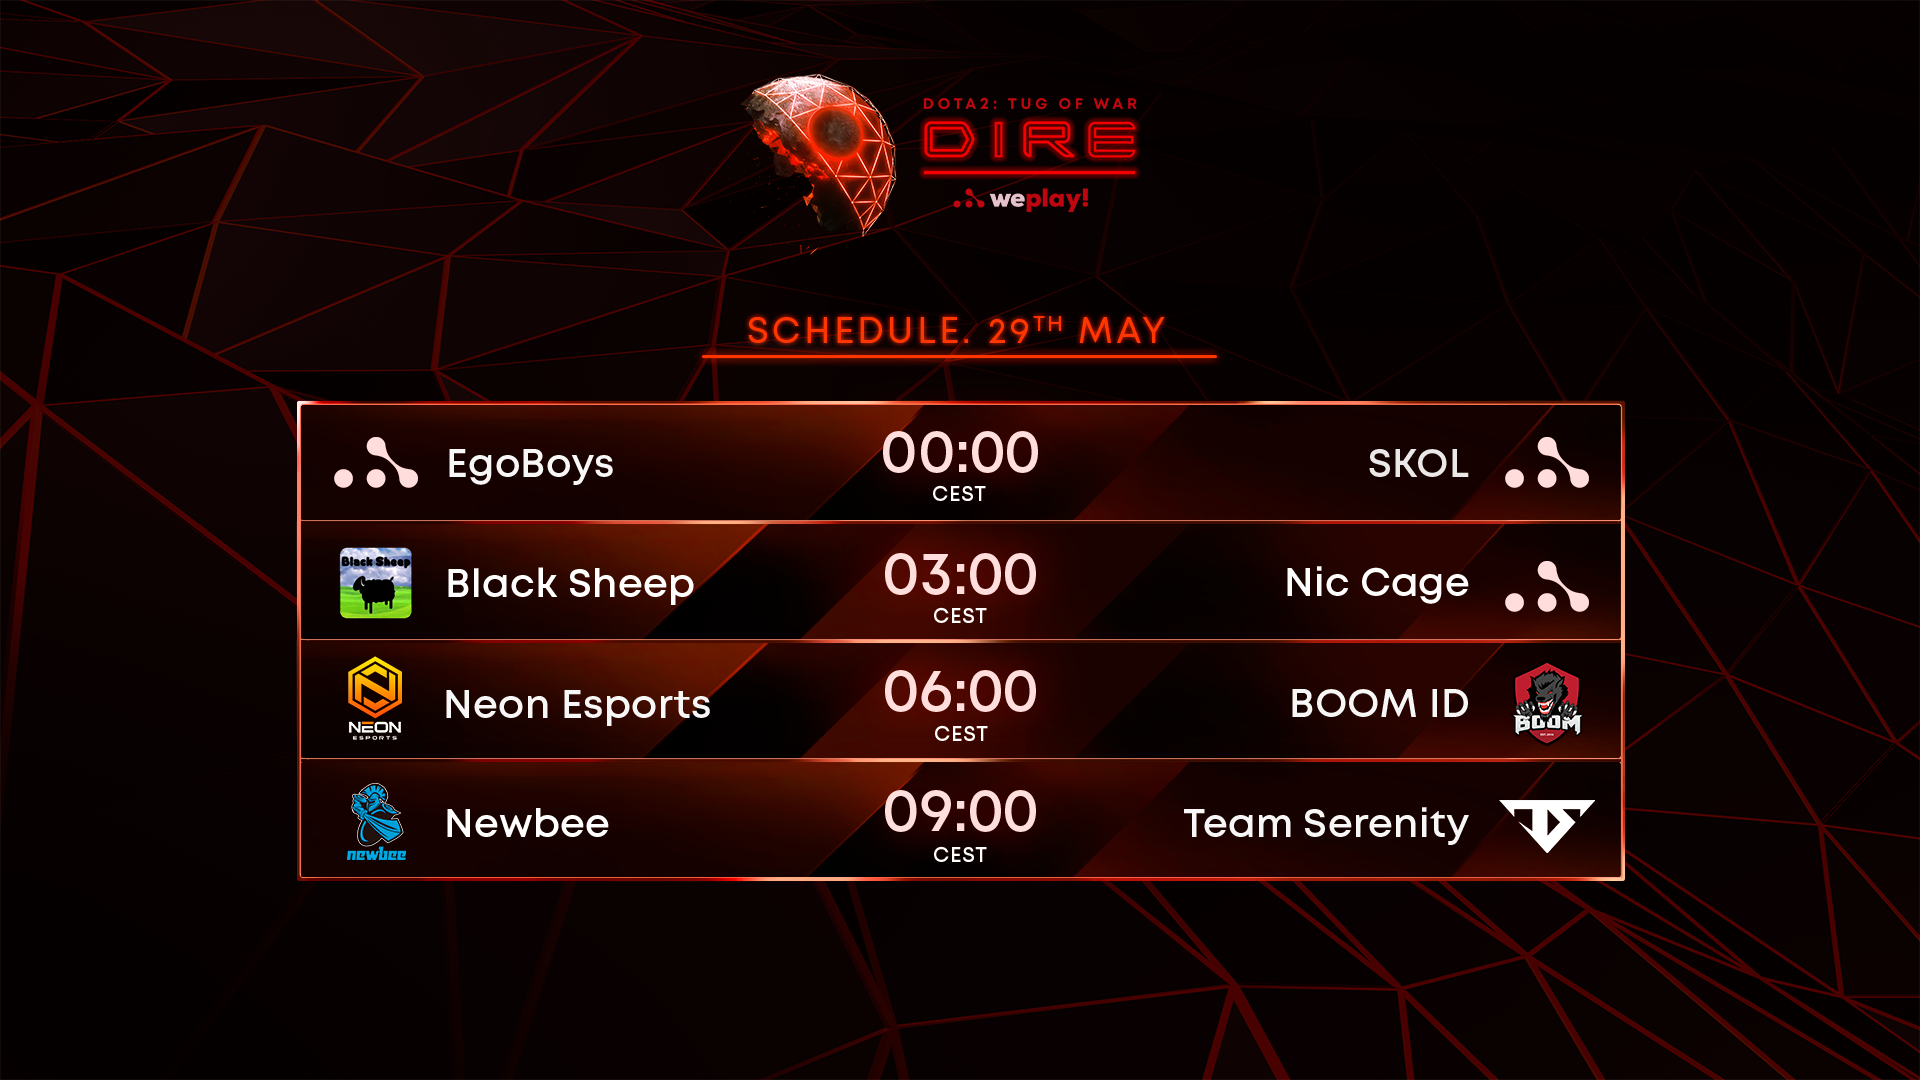 29th of May: Schedule